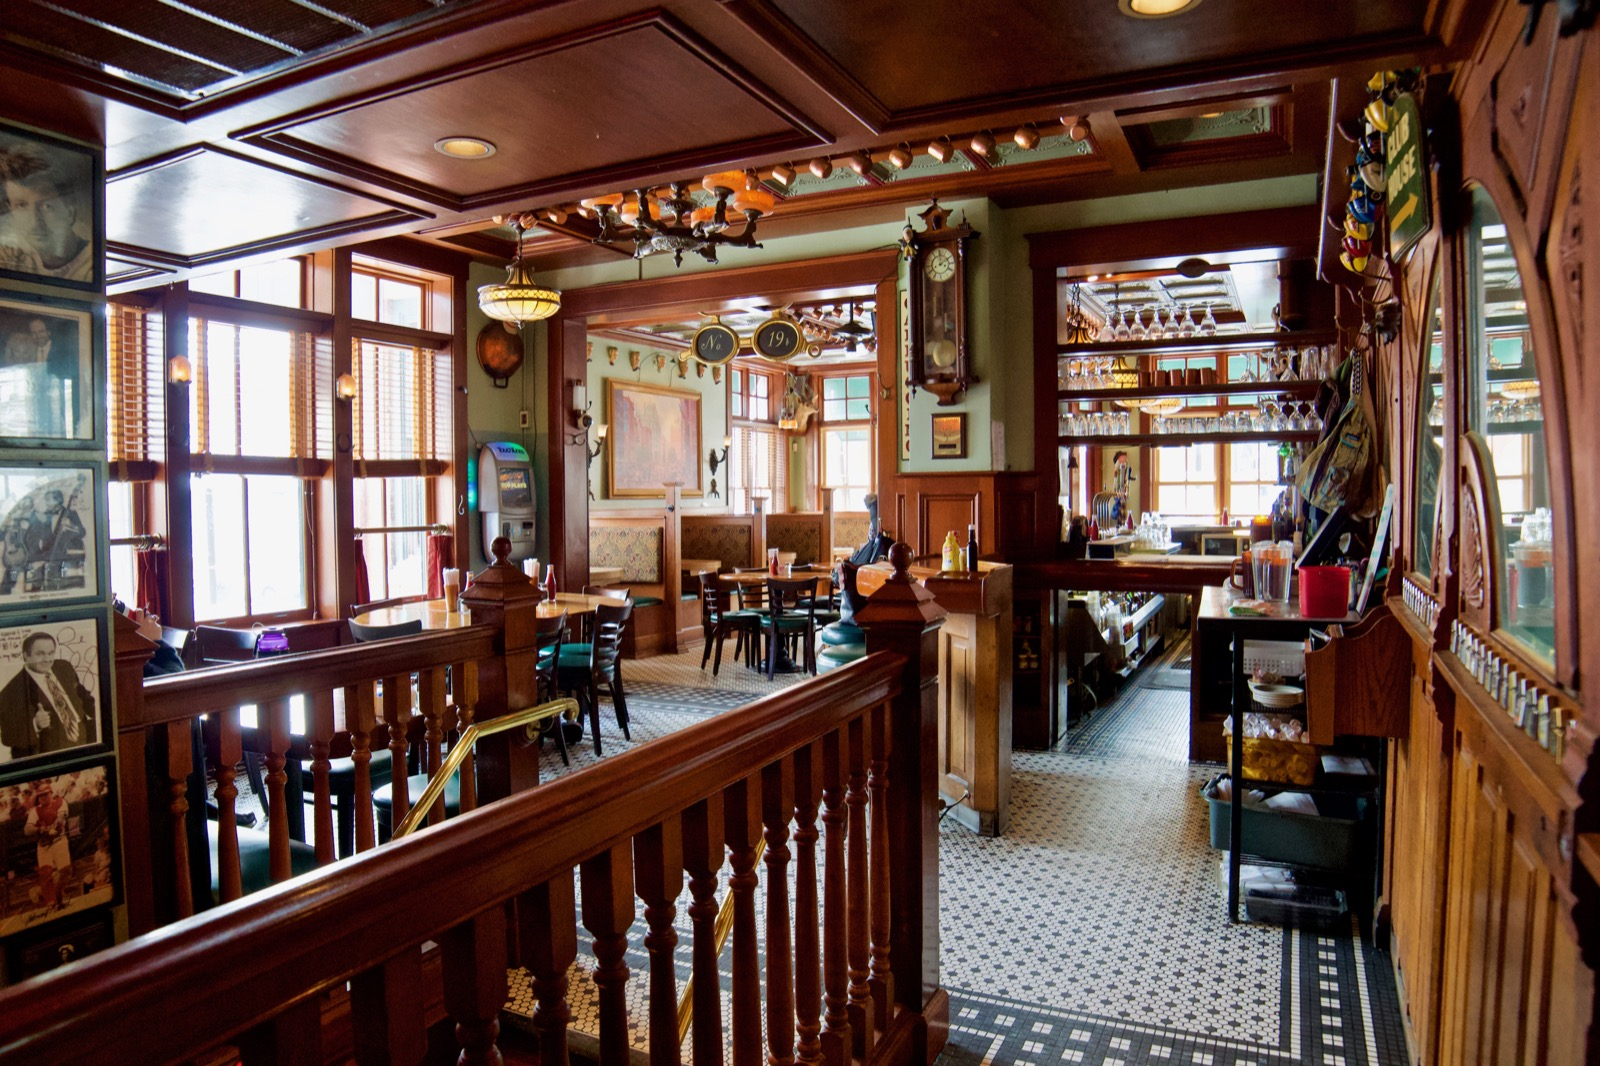 Mt. Adams Bar and Grill sits in a 110-year-old building that was once the site of a George Remus speakeasy. It's still decorated to match, with polished oak, gleaming brass, and an ornate tin ceiling. But the menu is all modern and includes both hearty bar food and healthy alternatives. / Image: Brian Planalp // Published: 1.26.18